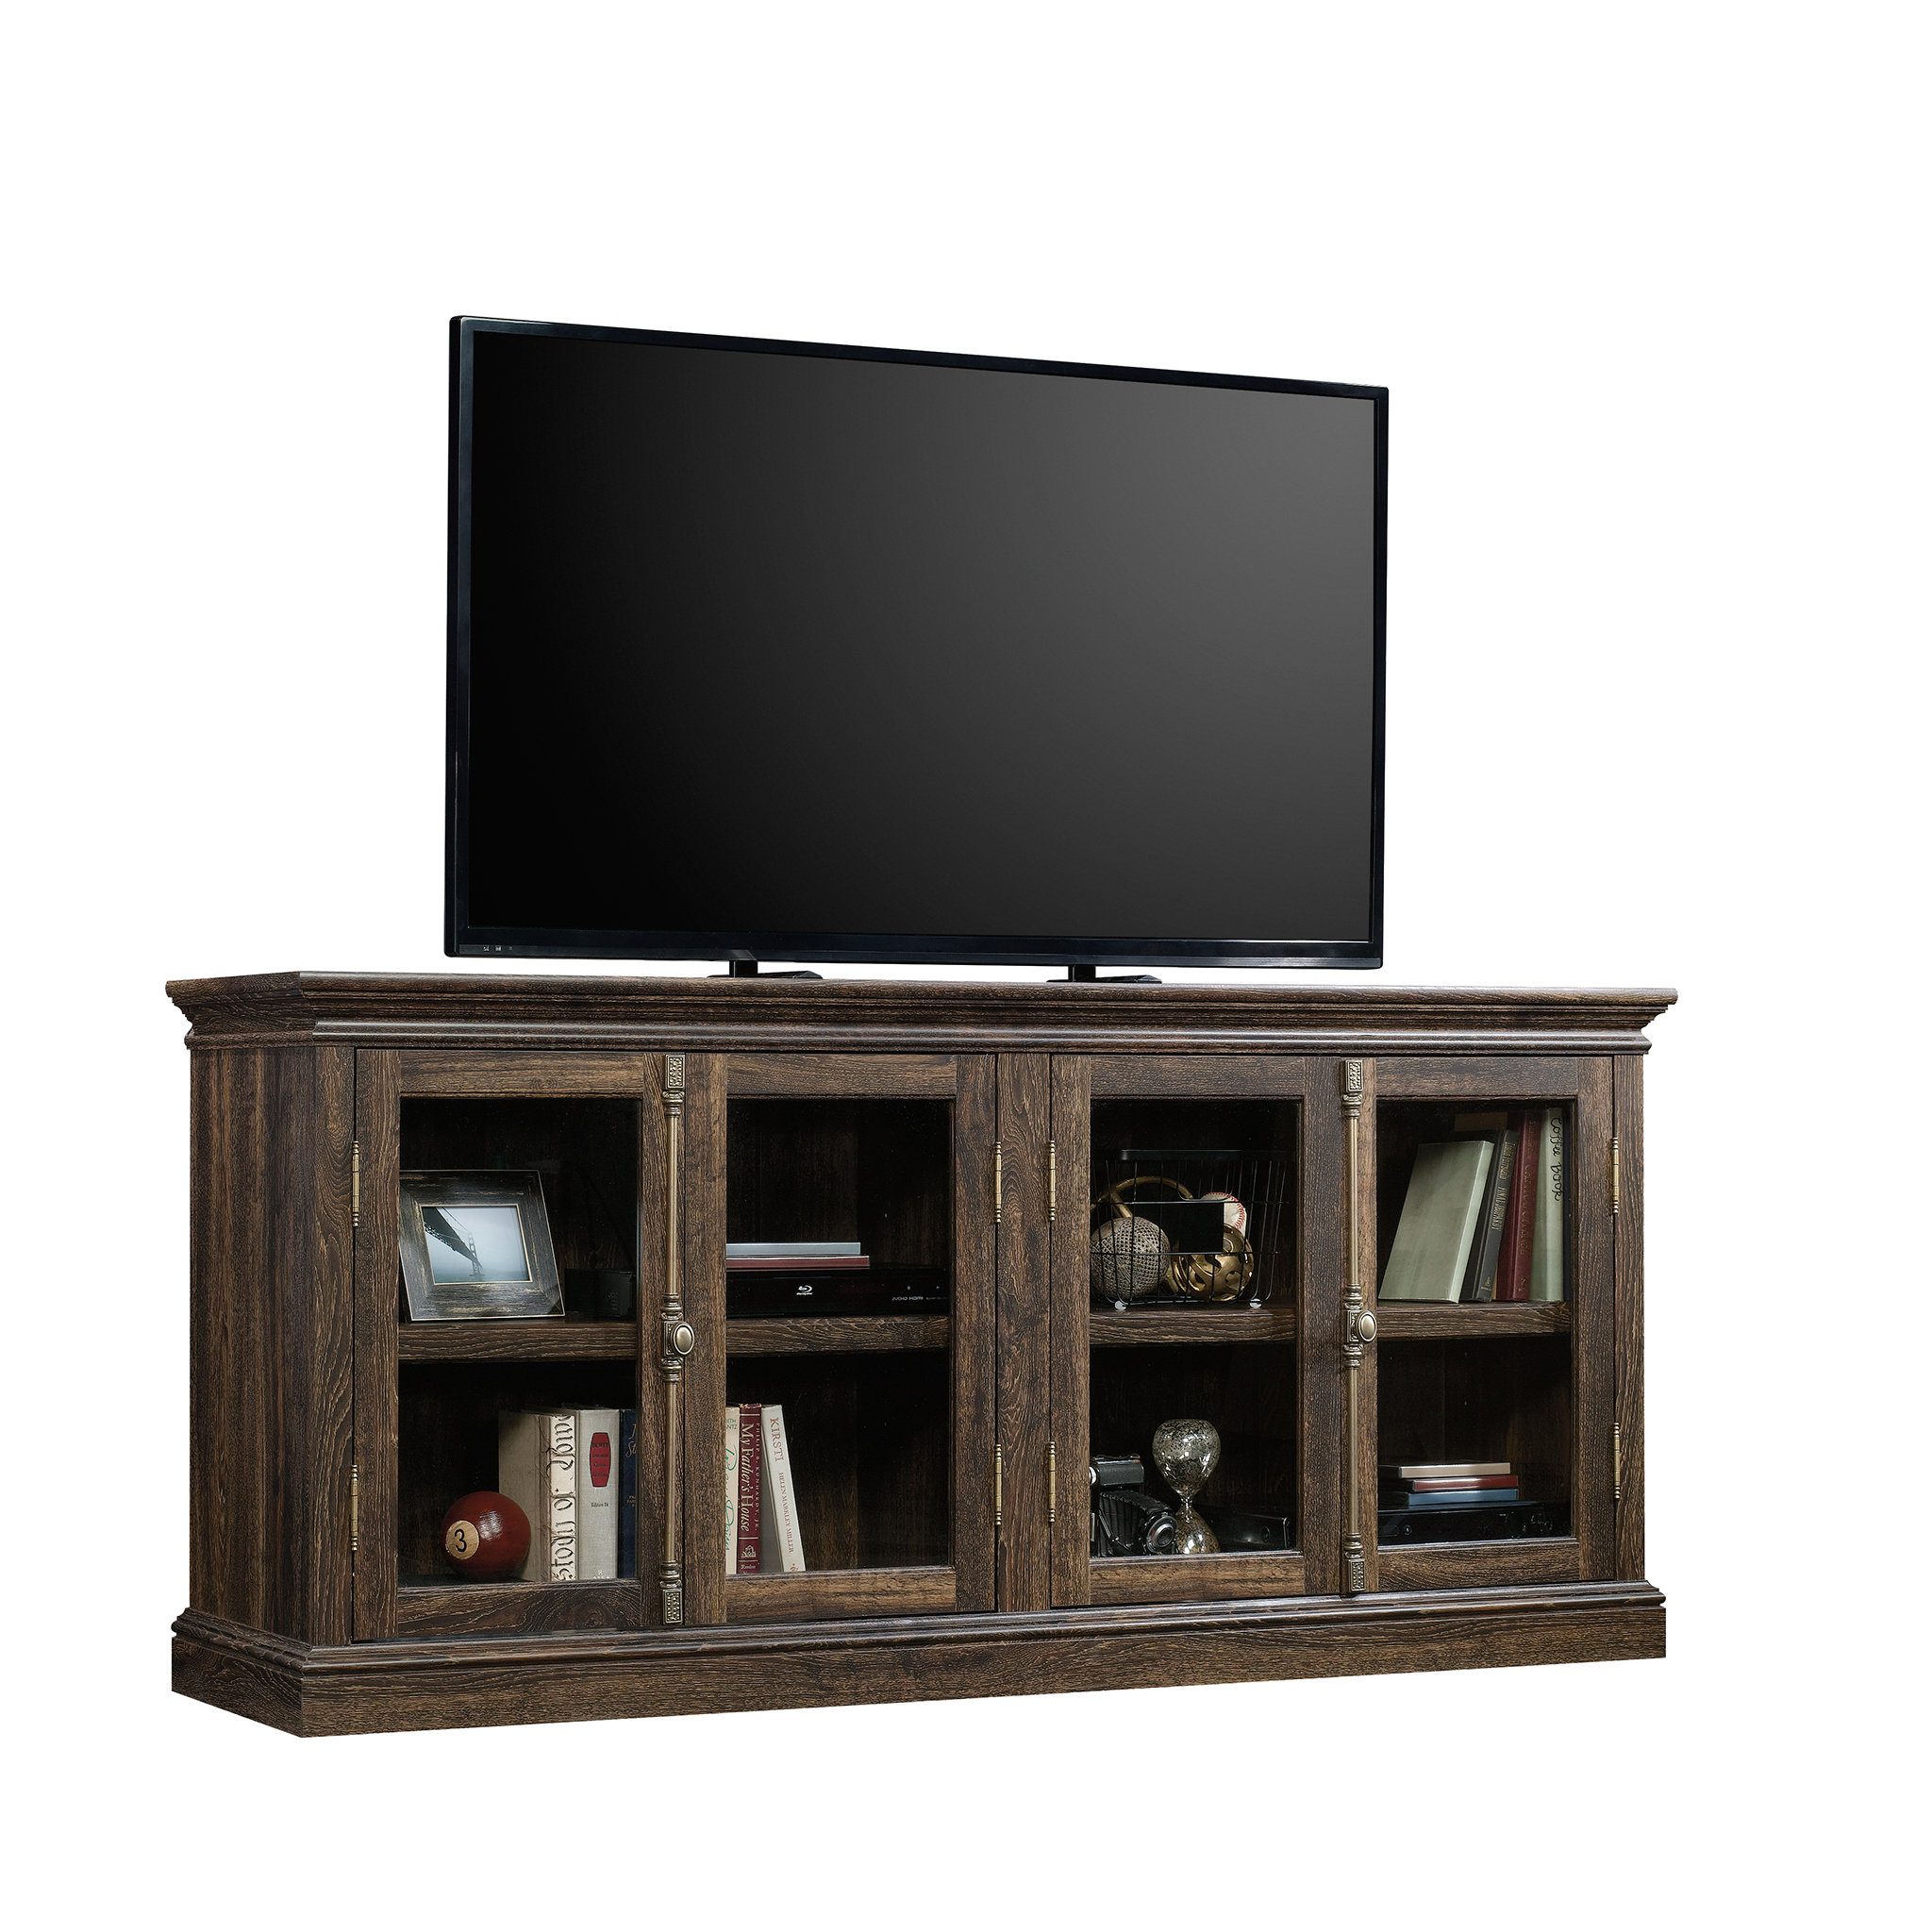 Tv Stands   Joss & Main Throughout Laurent 50 Inch Tv Stands (View 15 of 30)